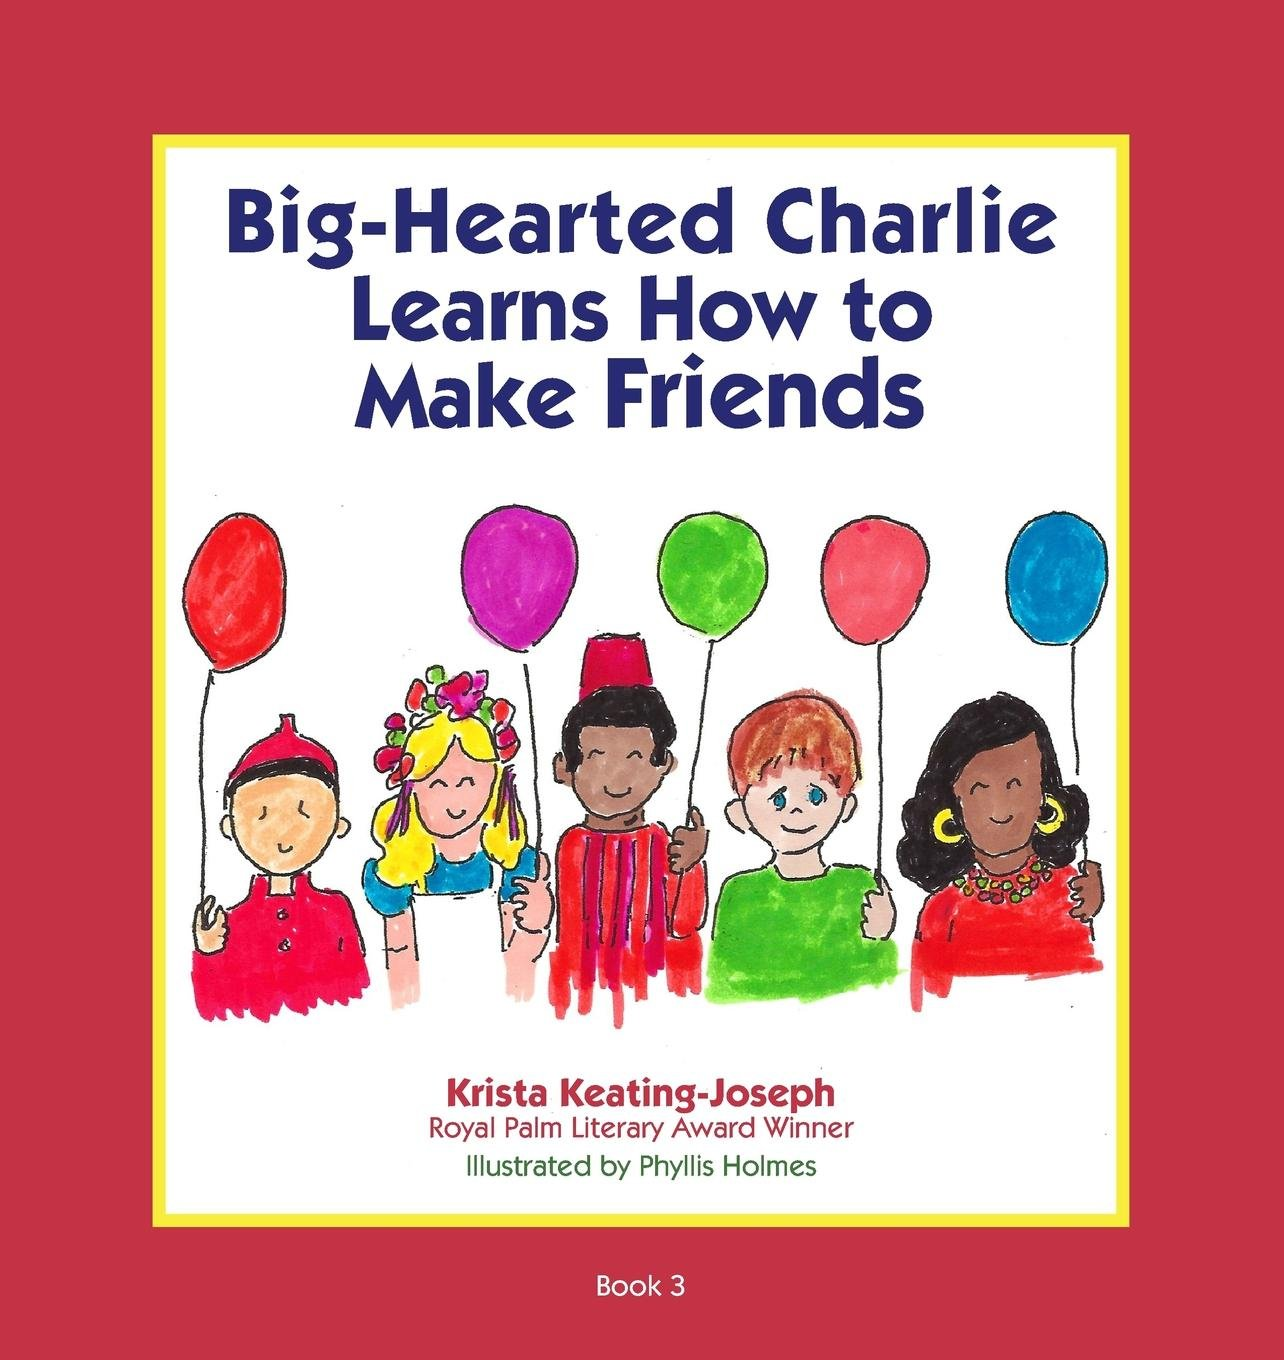 Big-Hearted Charlie Learns How to Make Friends